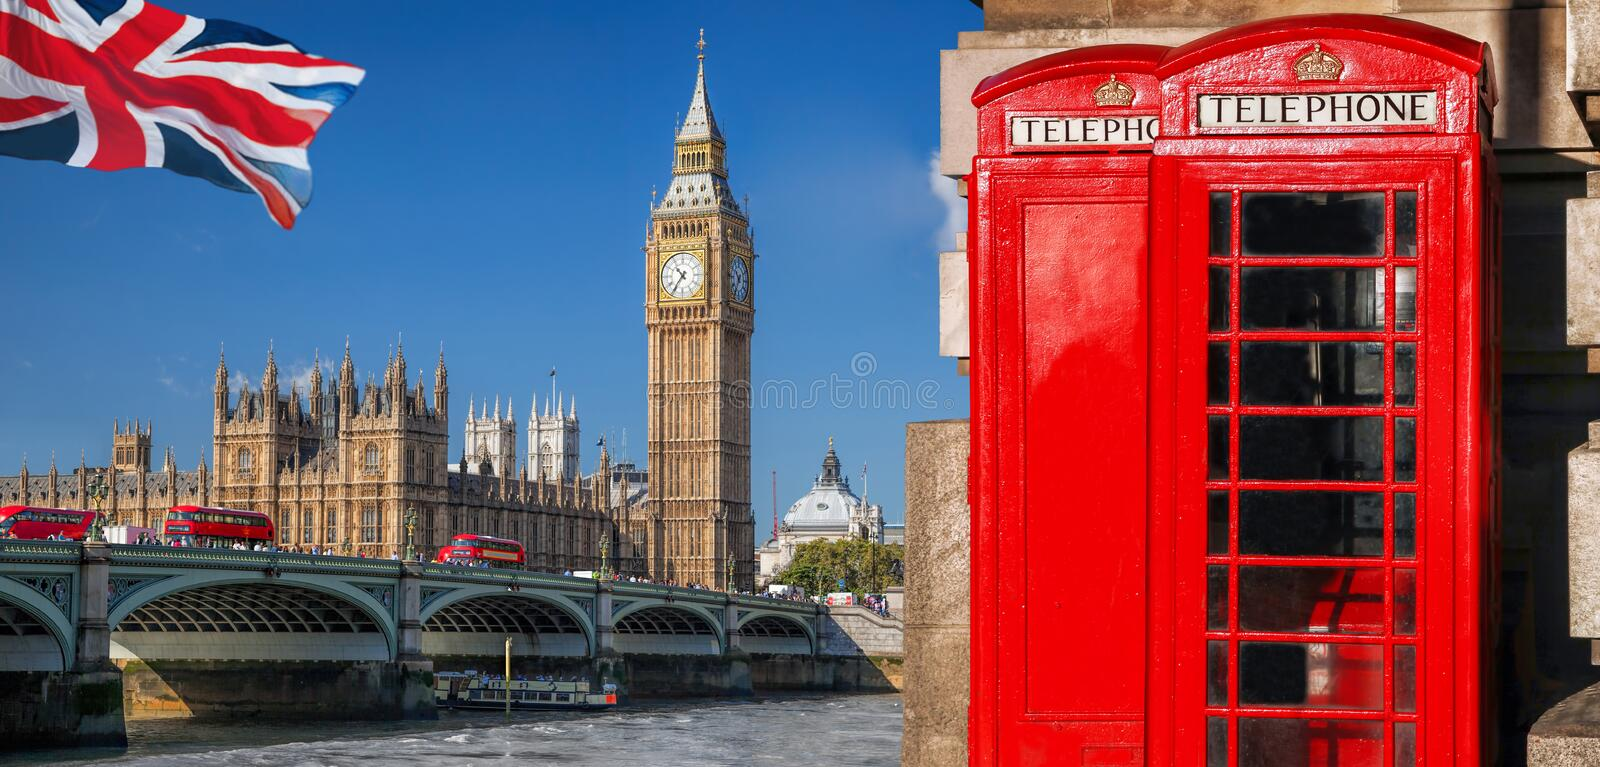 London symbols with BIG BEN, DOUBLE DECKER BUSES and Red Phone Booths in England, UK royalty free stock photo